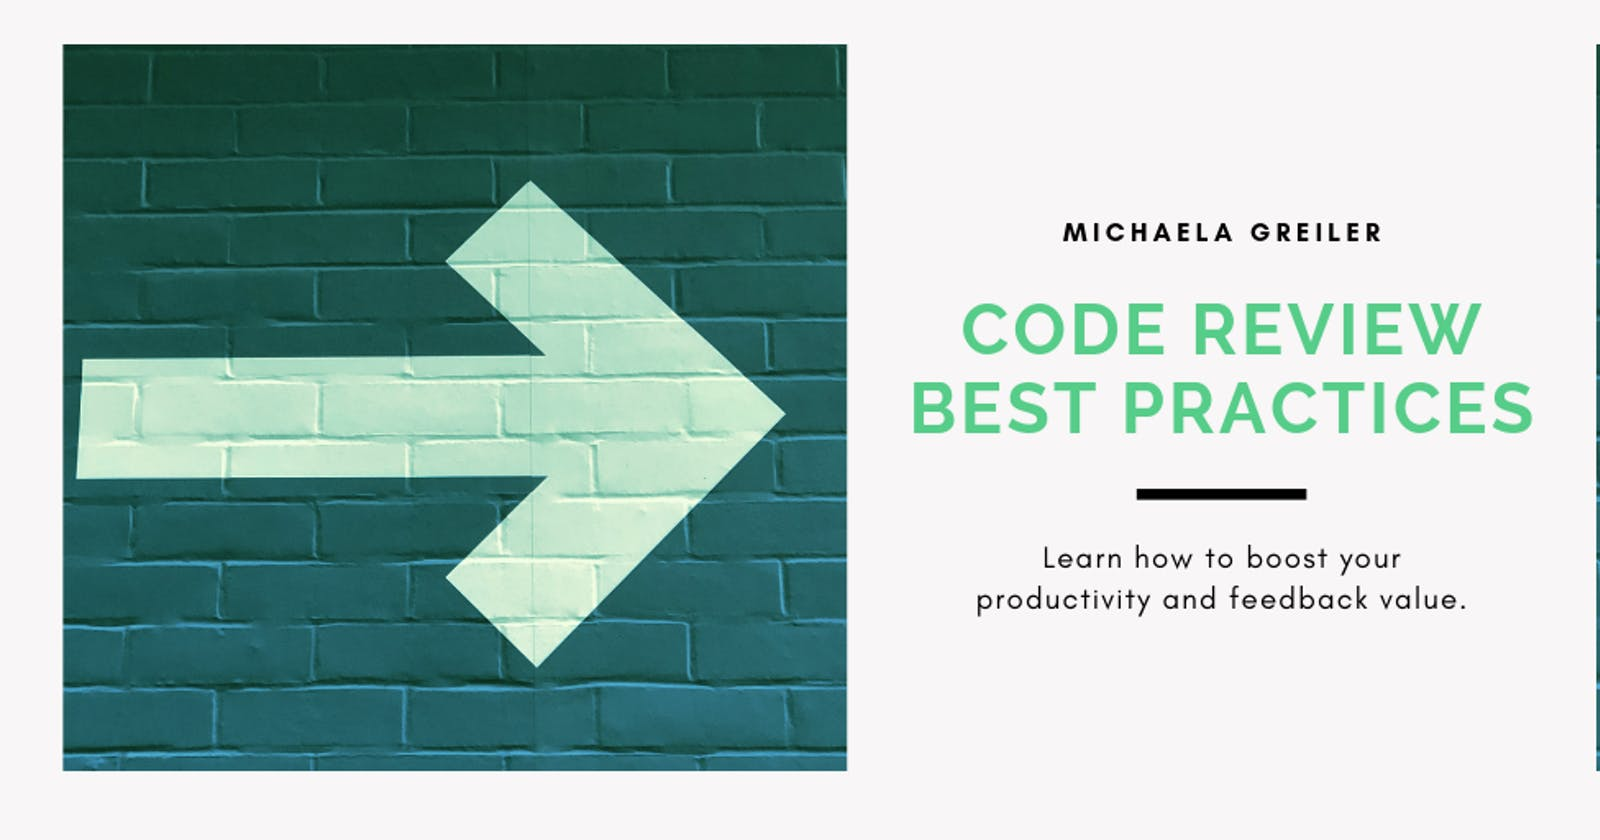 Proven Code Review Best Practices